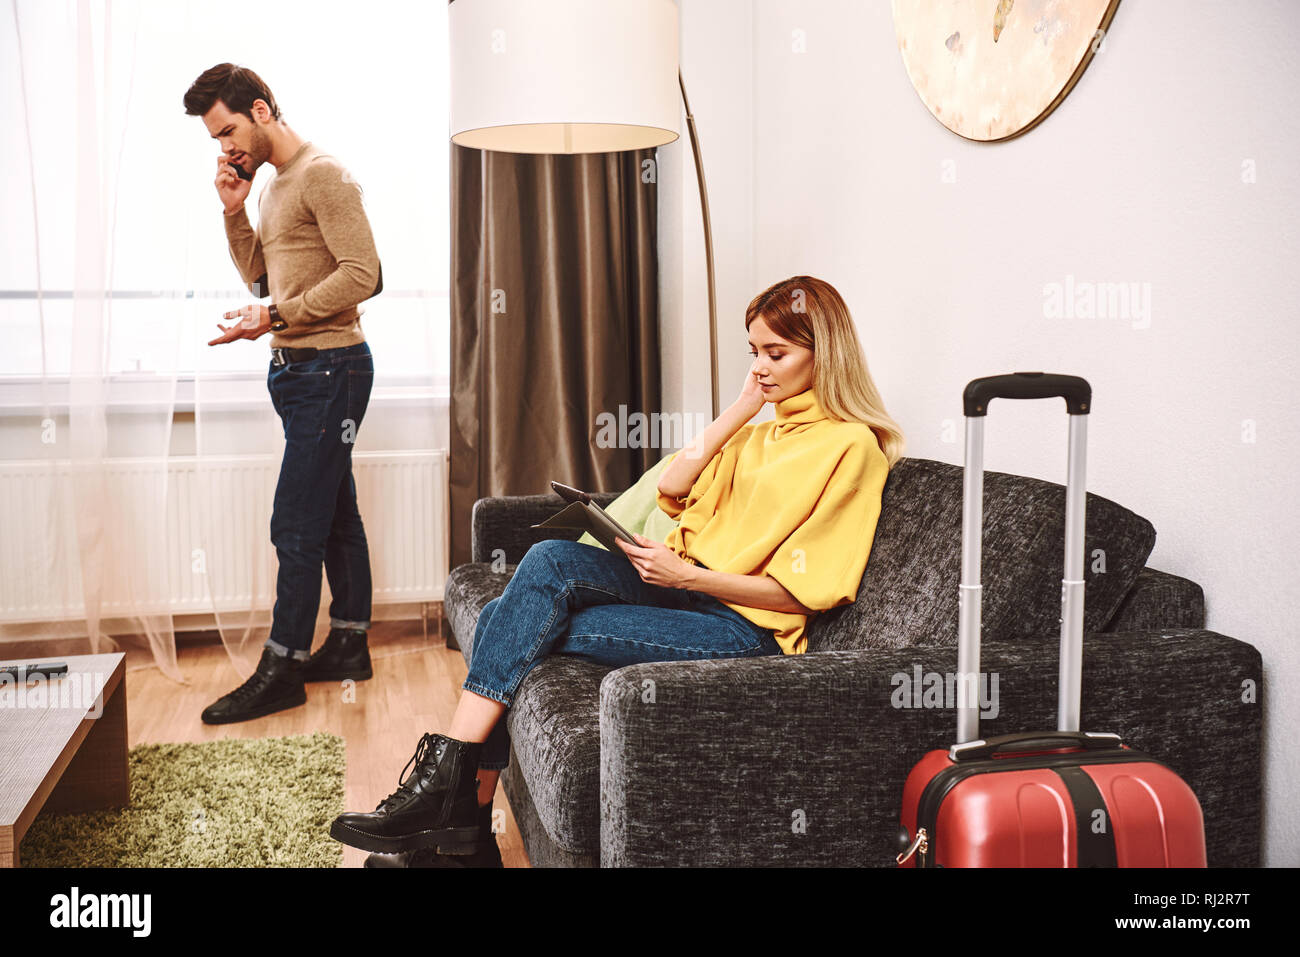 Online hotel research. Young man argue with hotel receptionist by smartphone. Young woman is searching for a new hotels at digital tablet - Stock Image